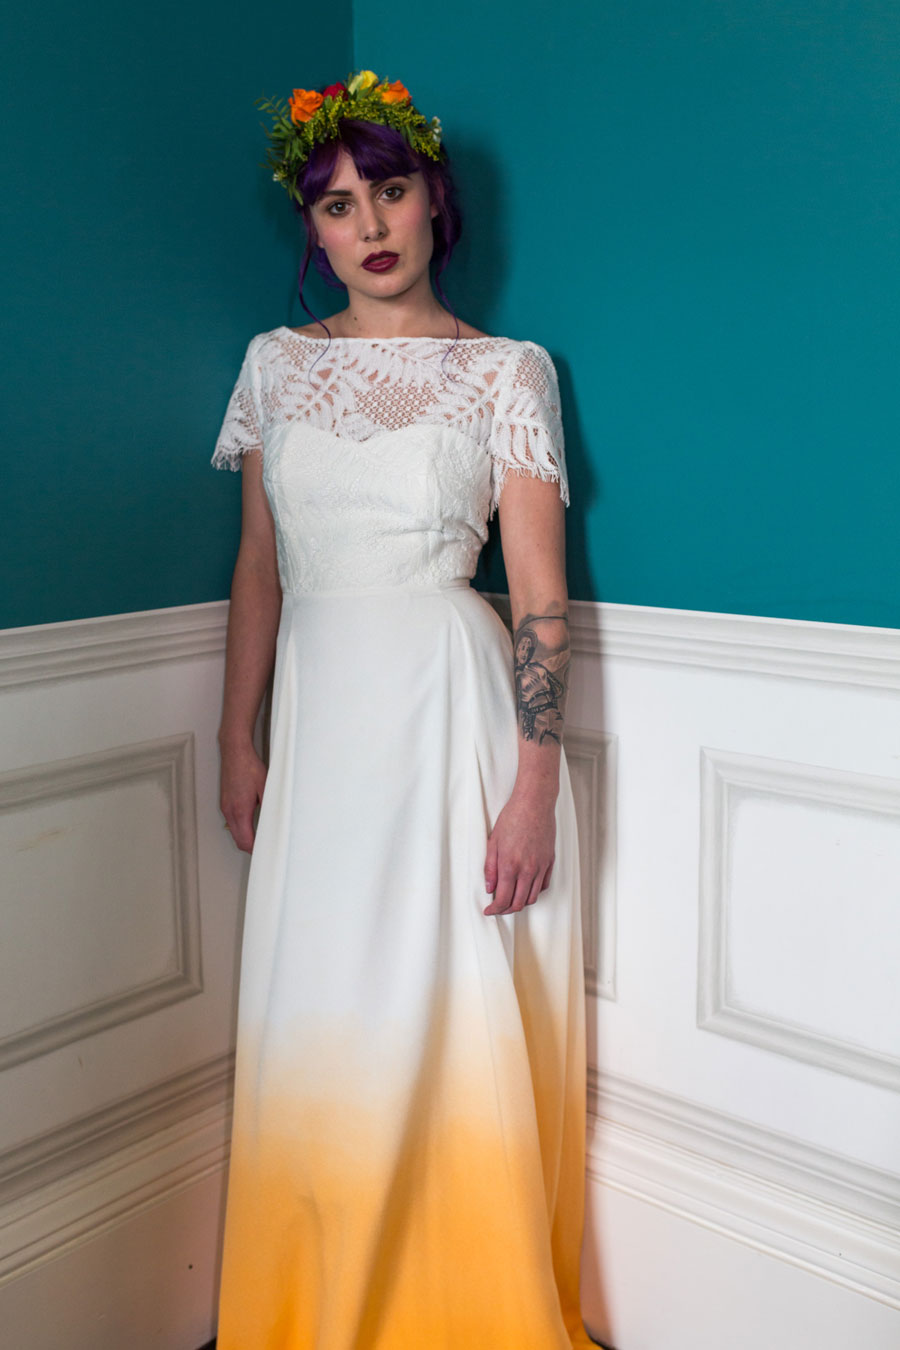 Colourful quirky wedding dresses for non traditional for Non wedding dresses for brides